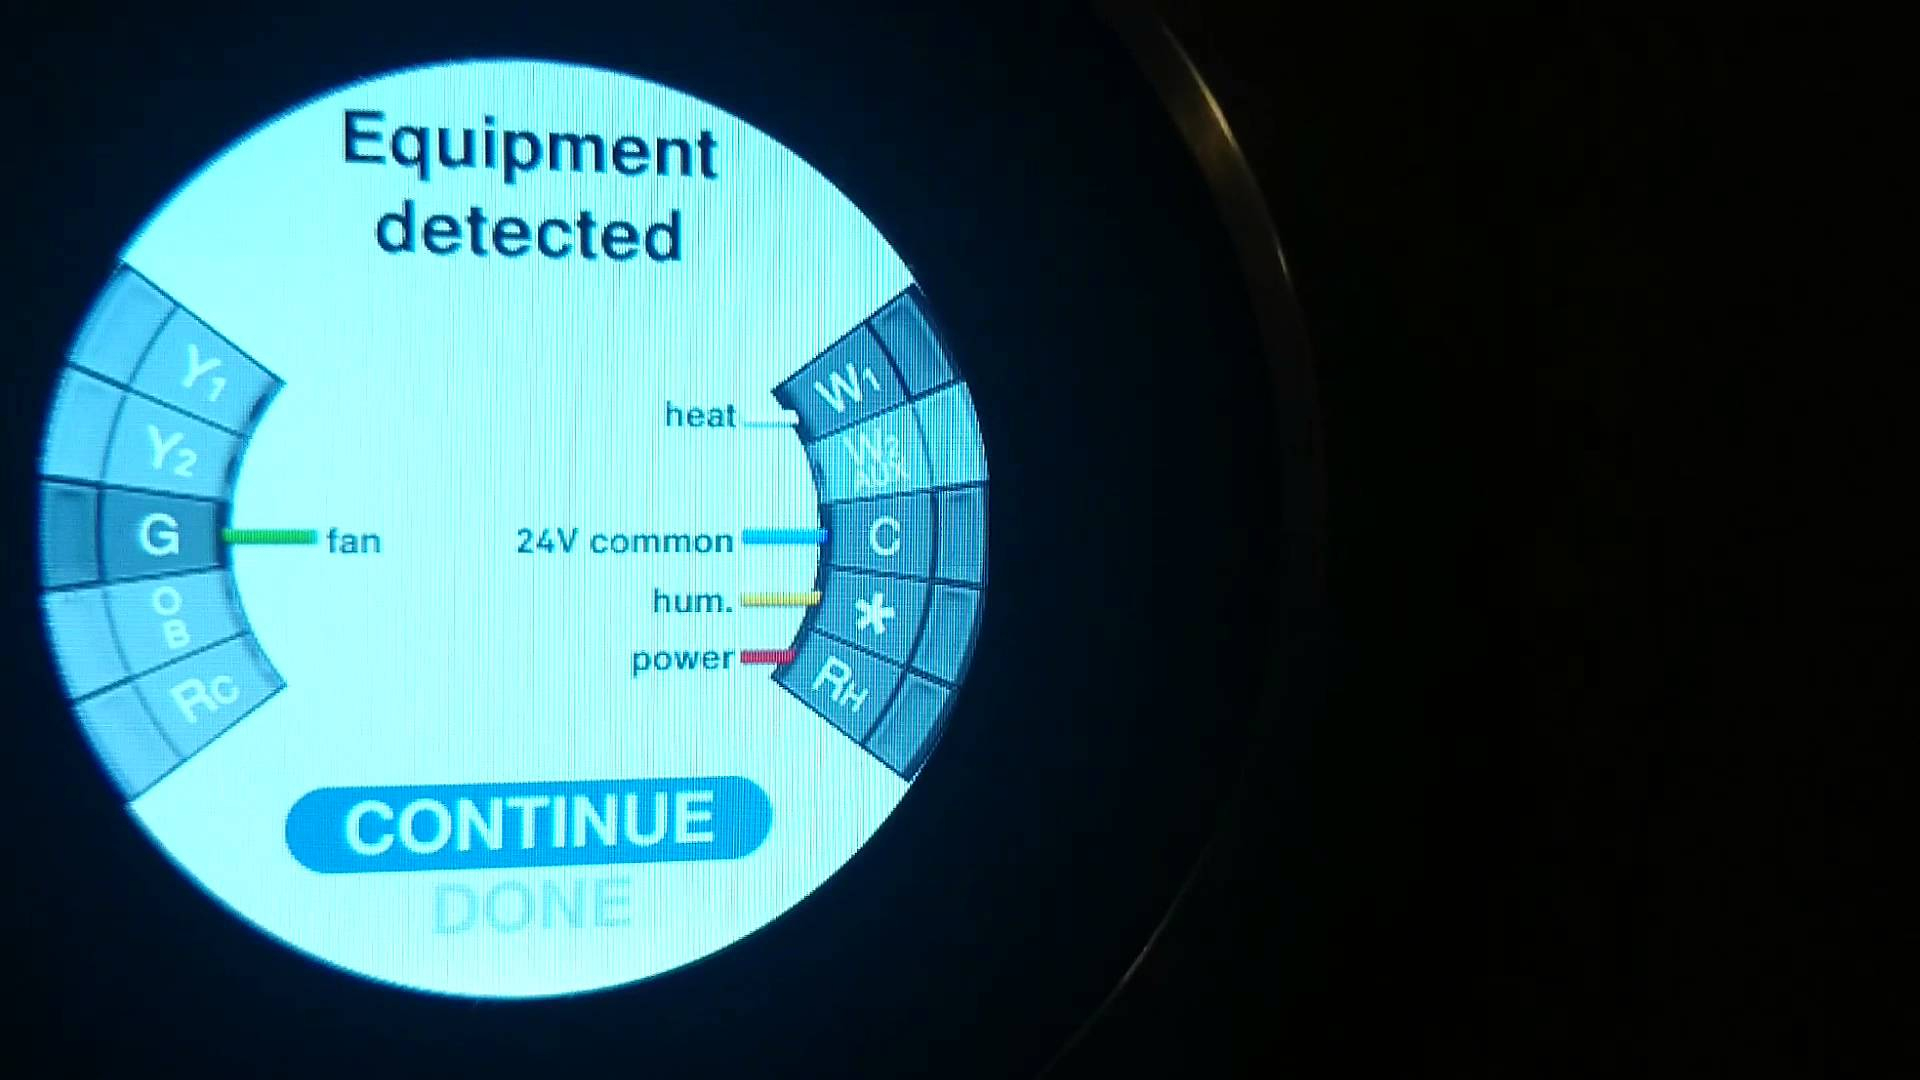 Wiring Diagram For Nest Thermostat With Humidifier - Wiring Diagrams - Nest 4 Wire Wiring Diagram